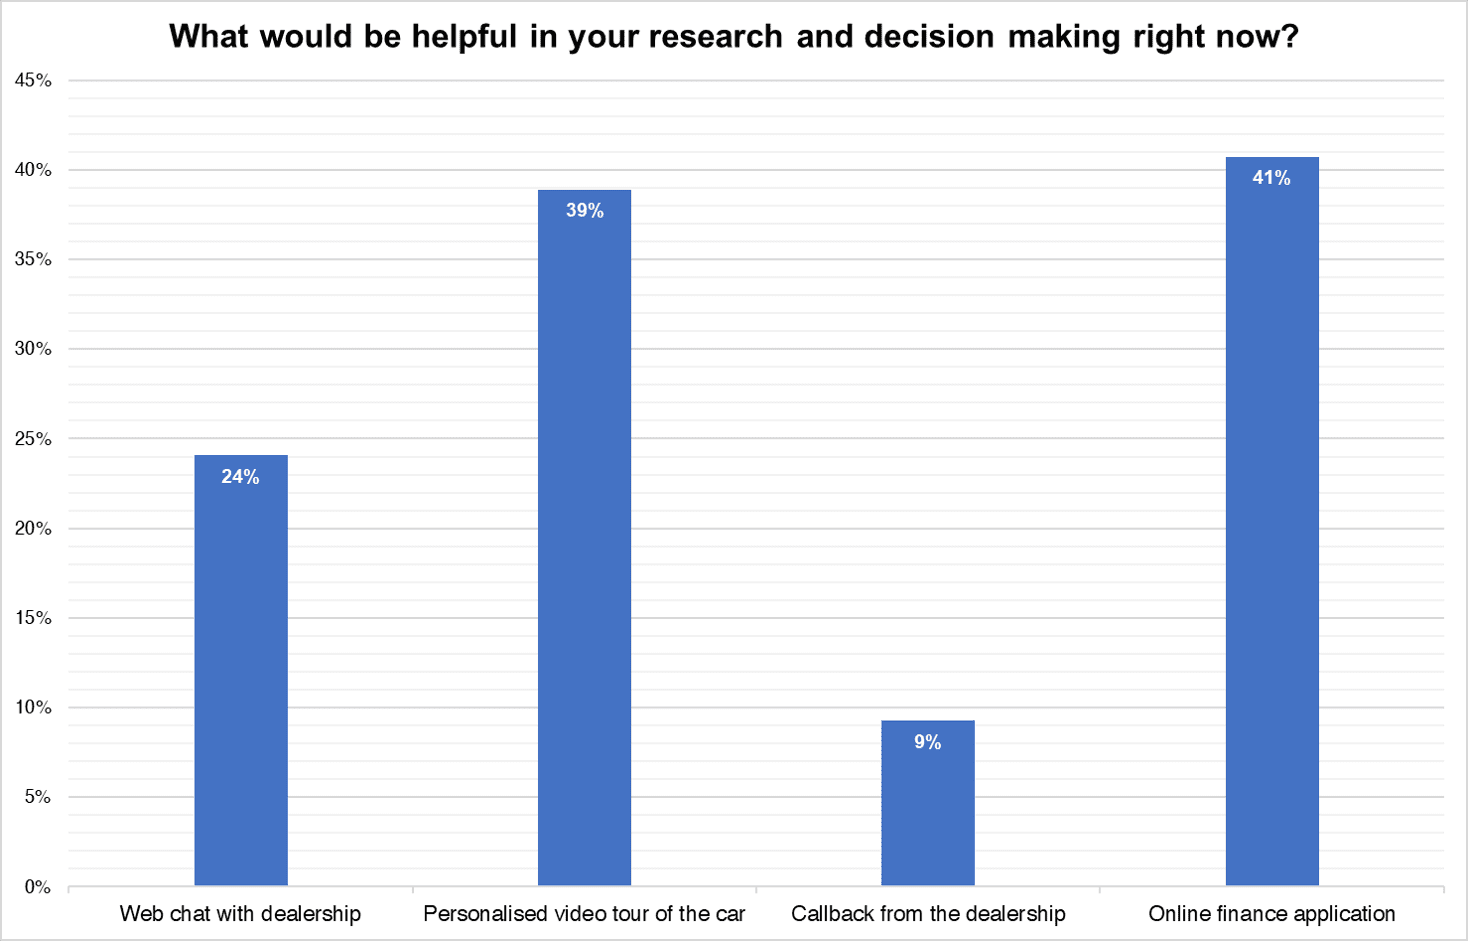 Survey question: what would be helpful in your research and decision making right now